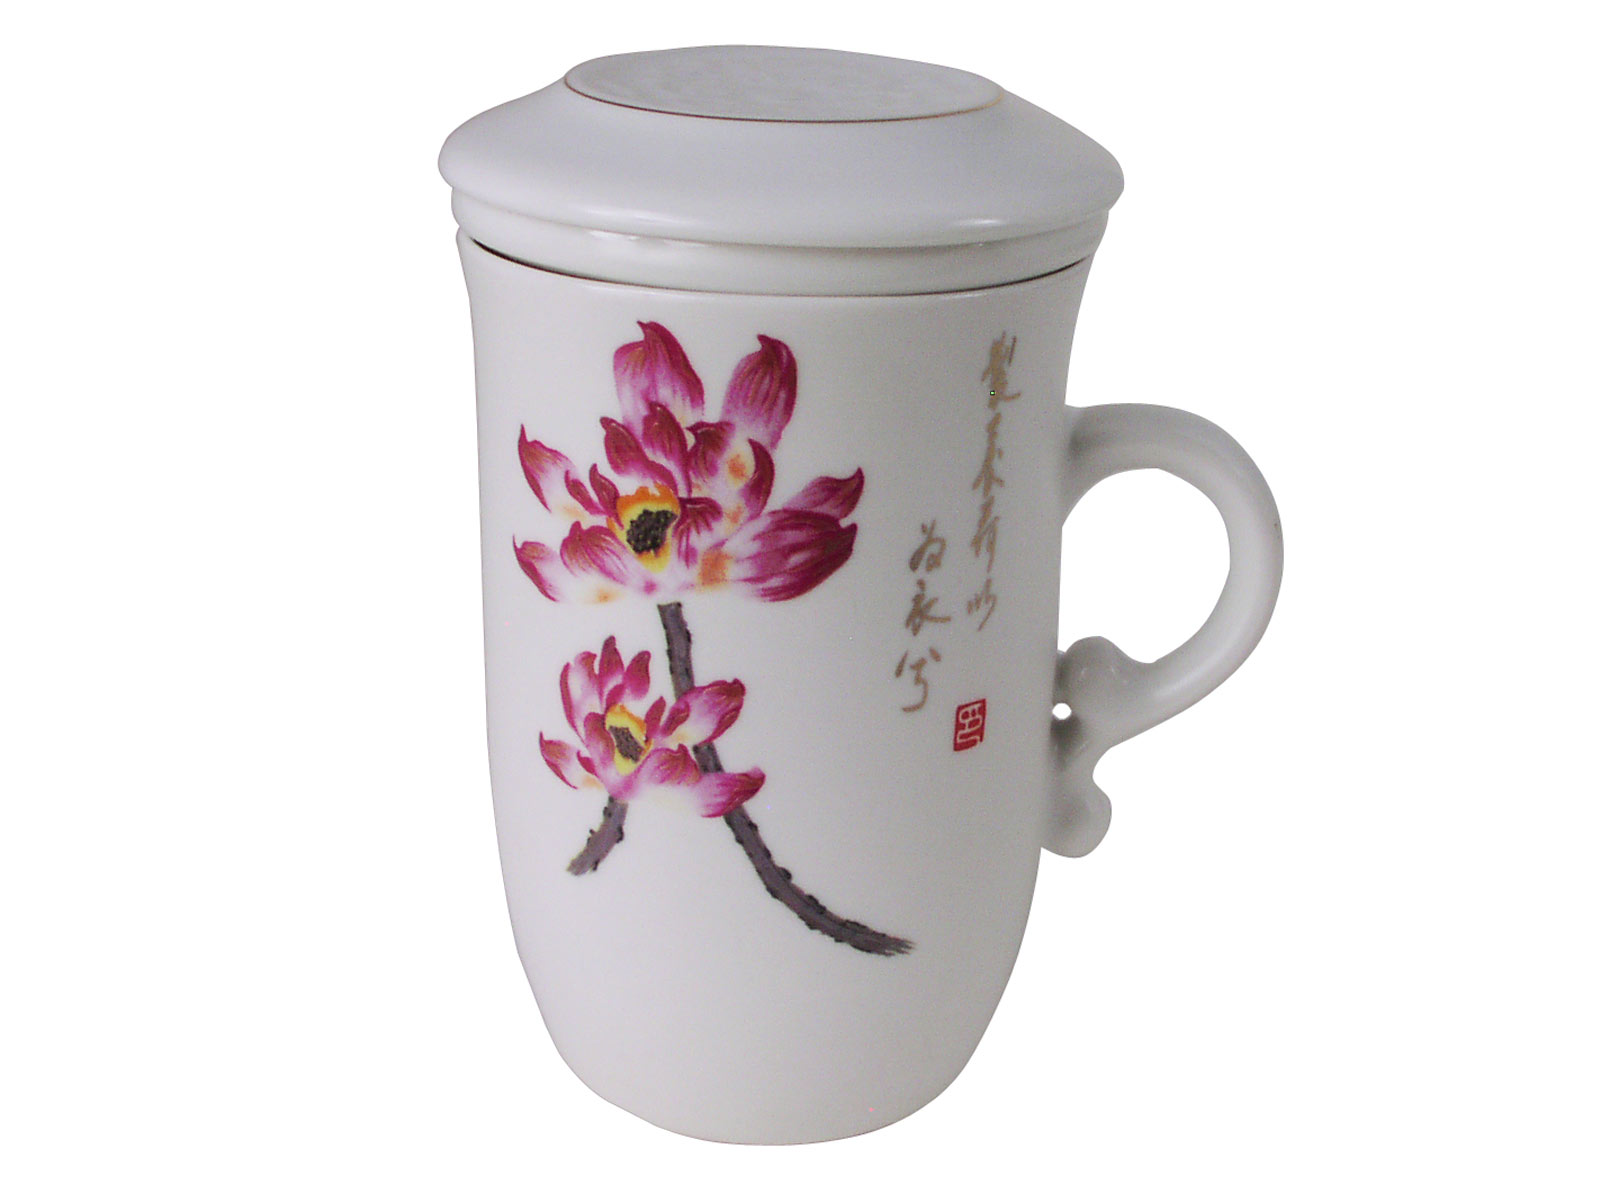 Purple Lotus Porcelain Tea Infuser Mug